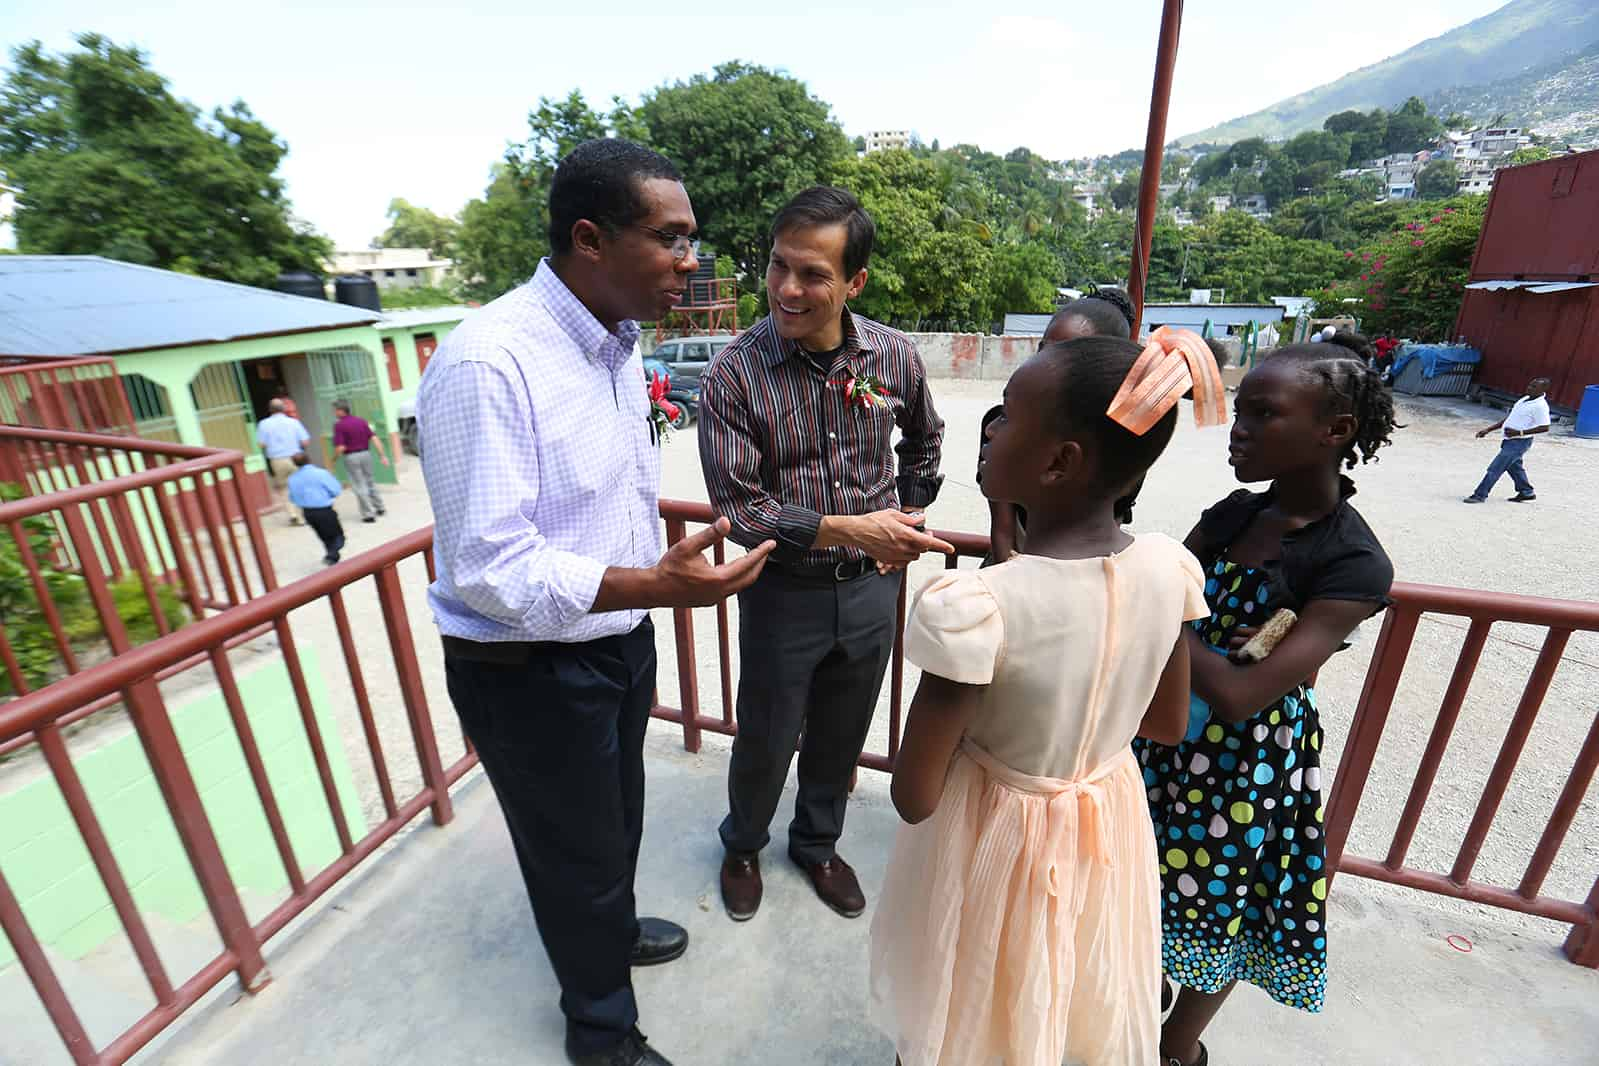 Edouard Lesege and Jimmy Mellado talk with three young girls at the project. They are all dressed up in their best clothes.